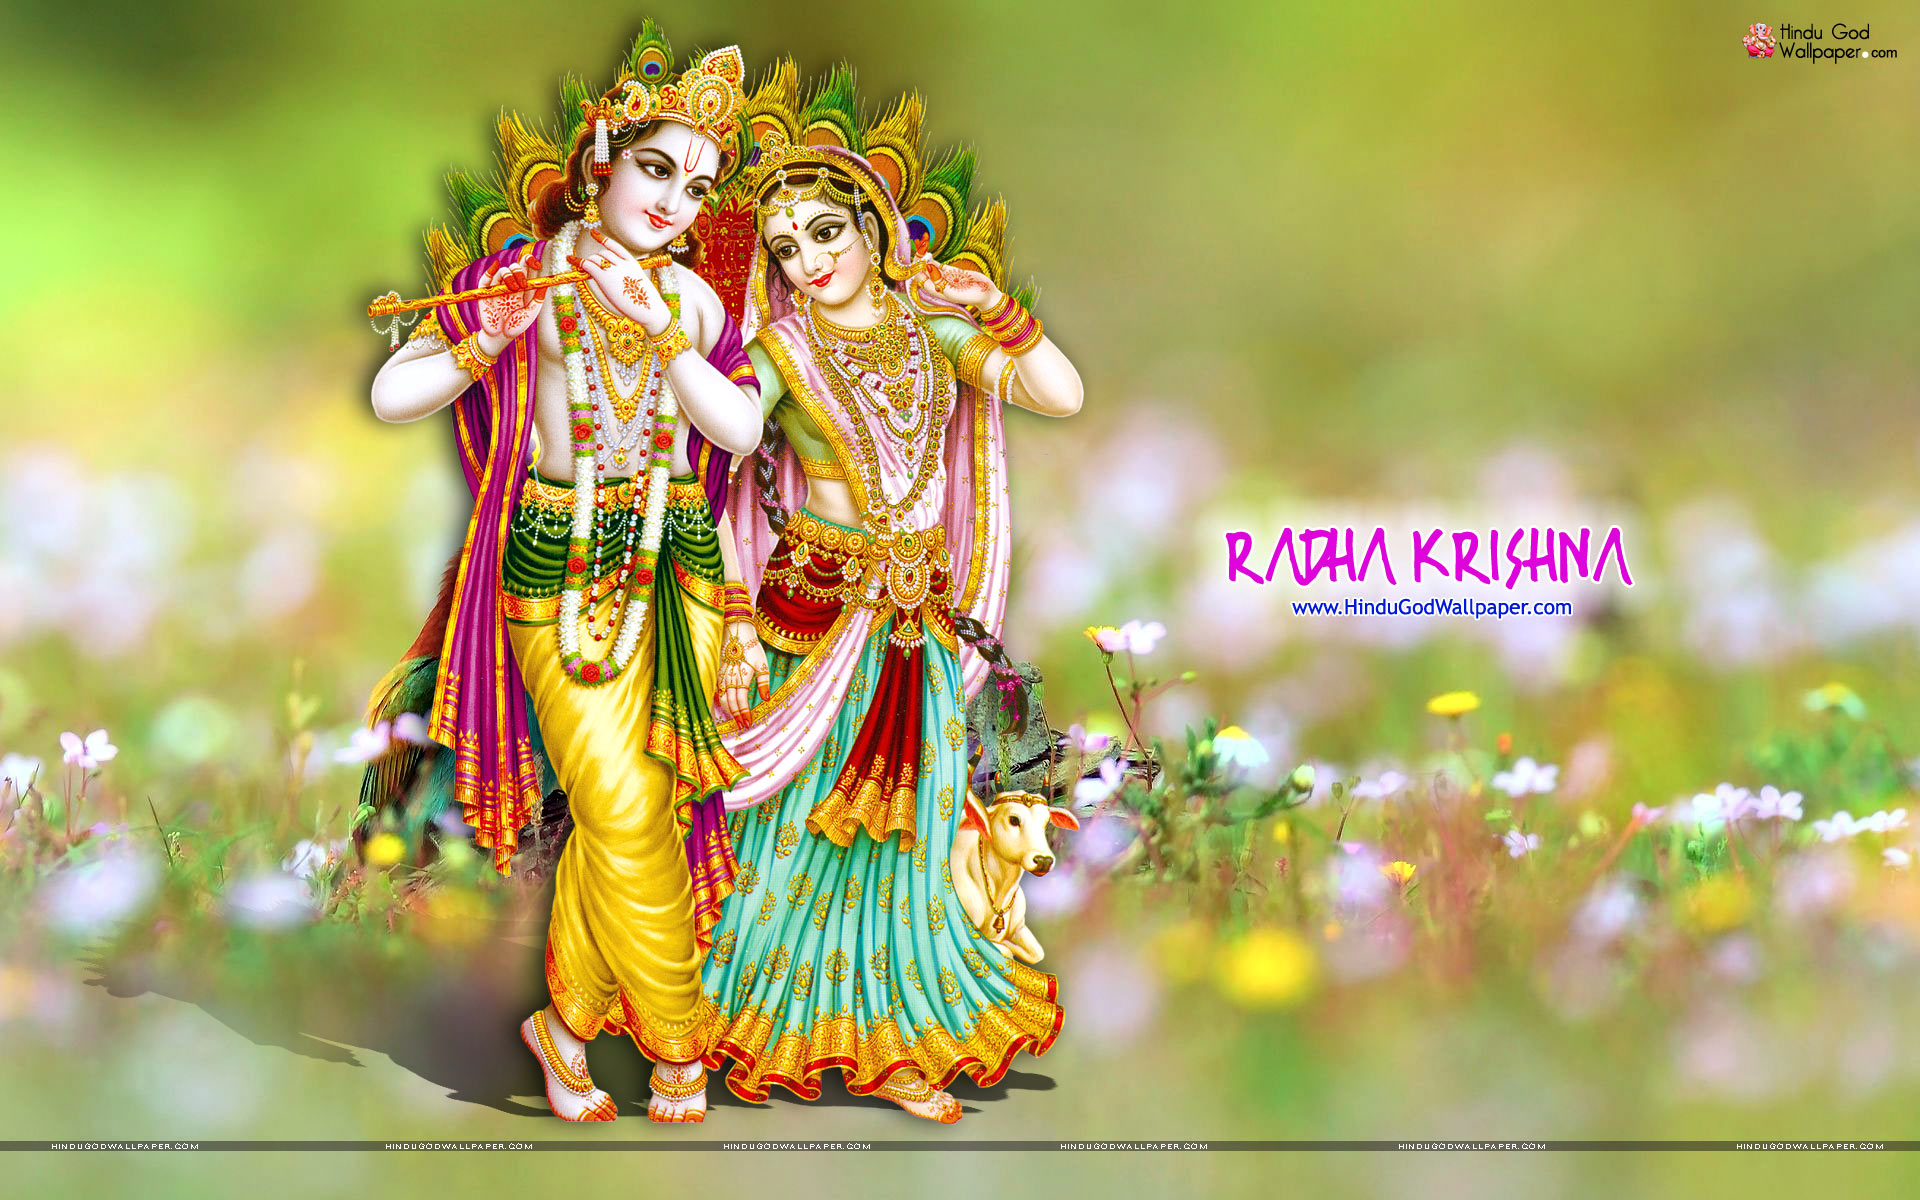 Wallpaper download krishna - Suggestions Online Images Of Desktop Wallpaper 3d God Krishna Best Games Wallpapers Pinterest Krishna Wallpaper And Hd Wallpaper